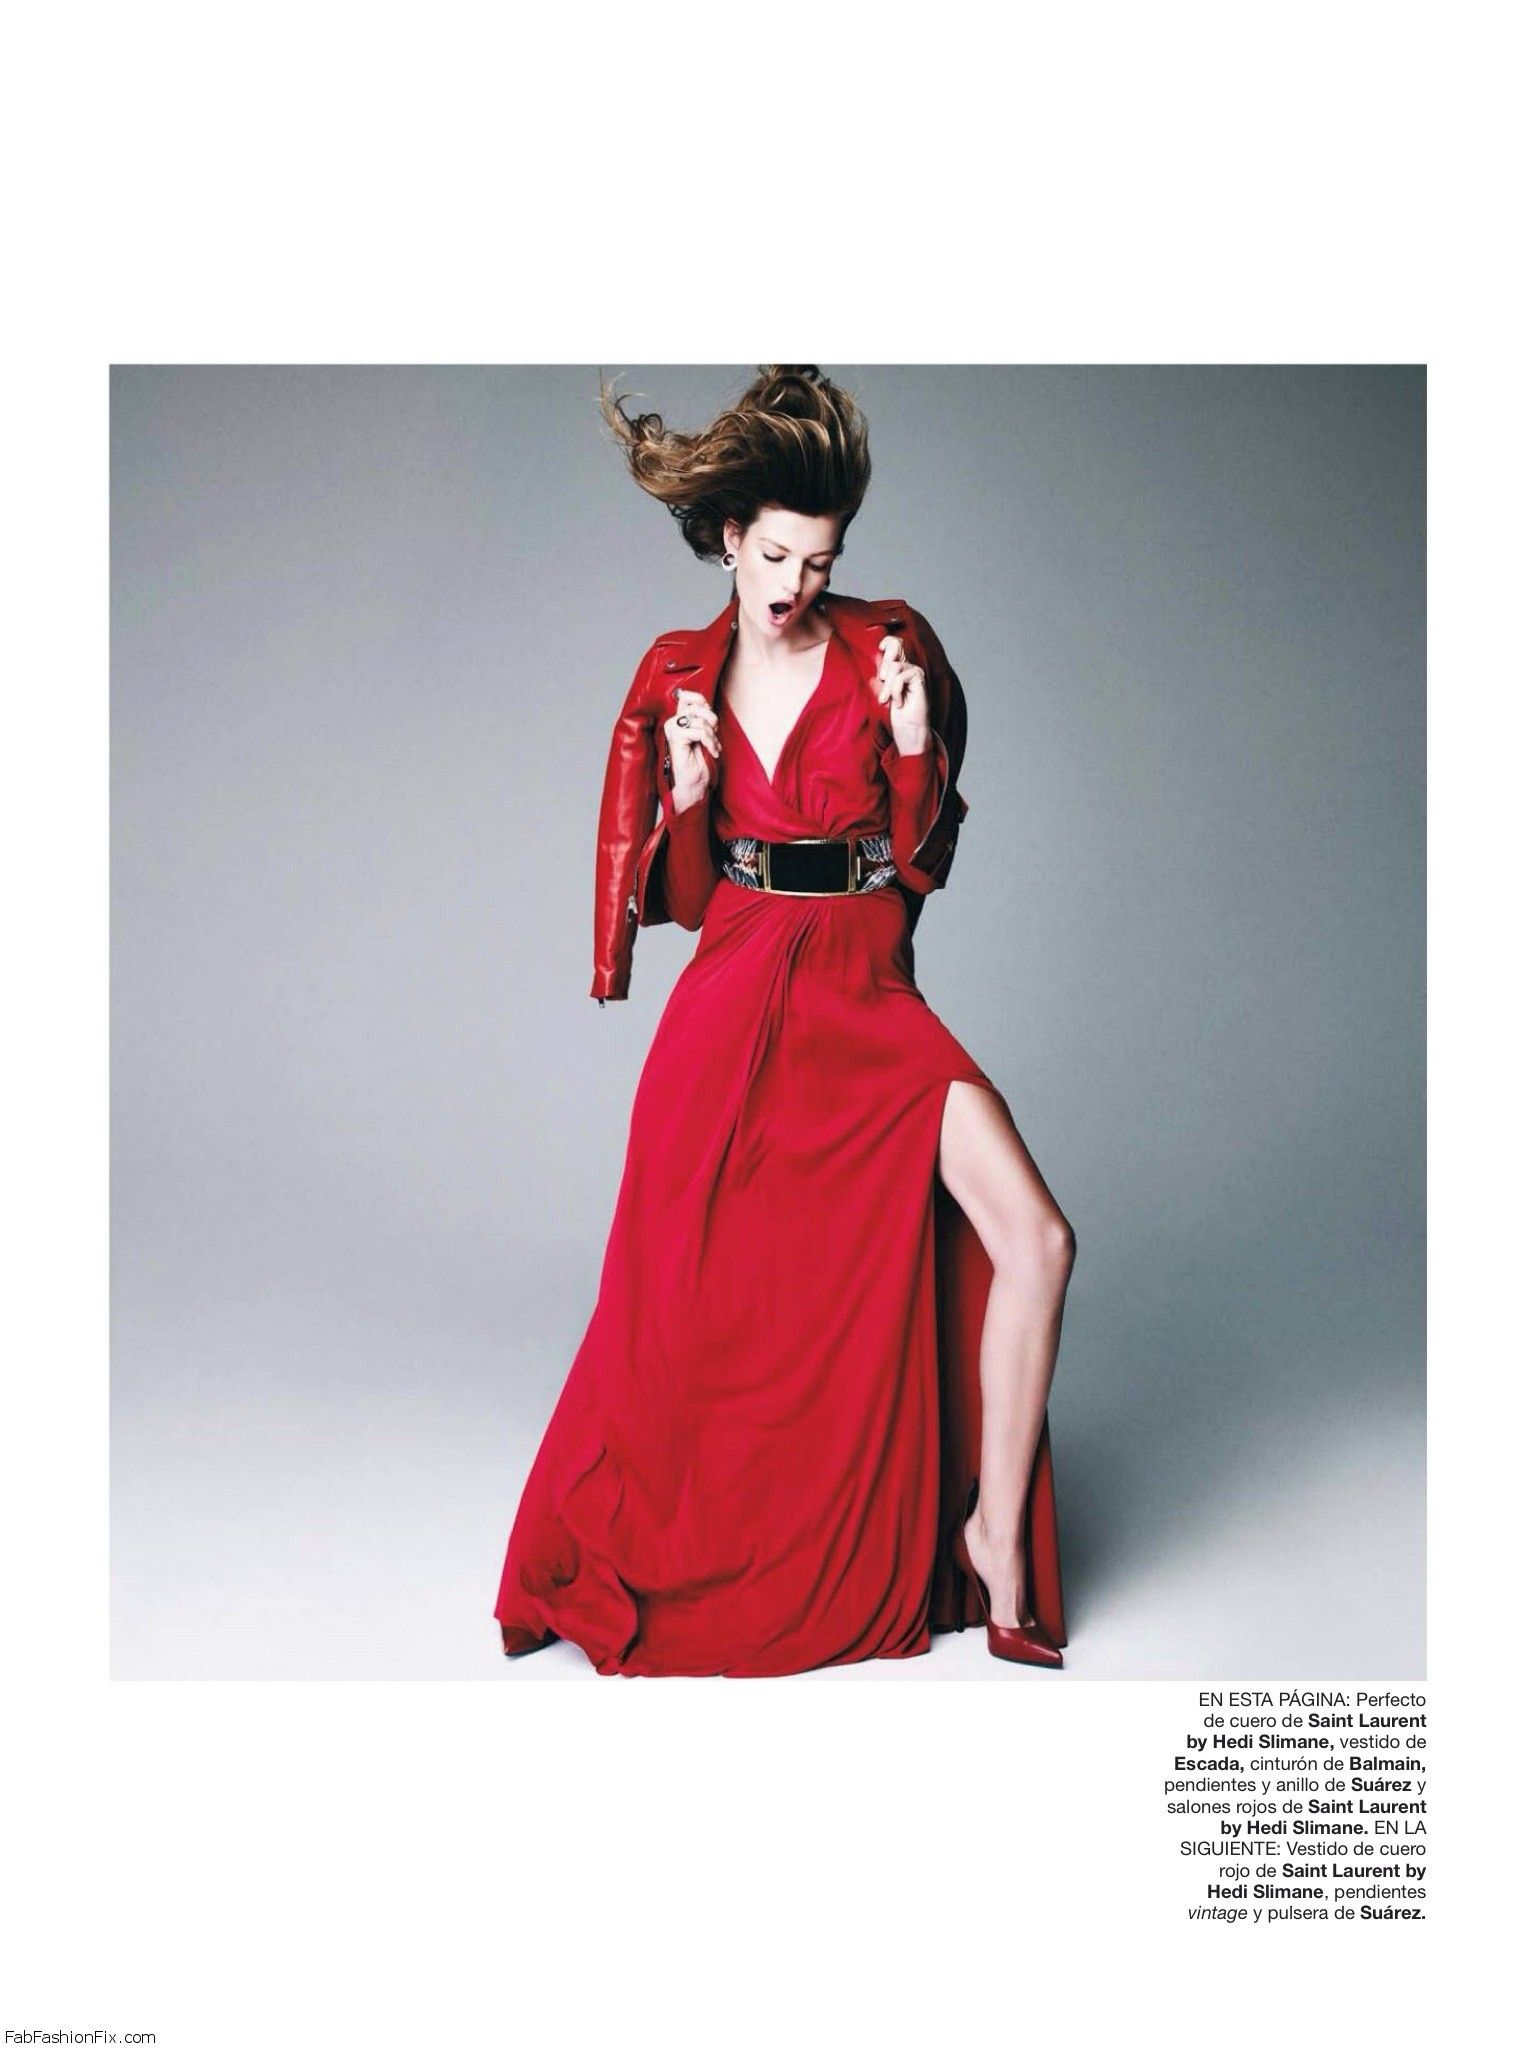 fashion_scans_remastered-bette_frank-harpers_bazaar_espana-december_2013-scanned_by_vampirehorde-hq-8